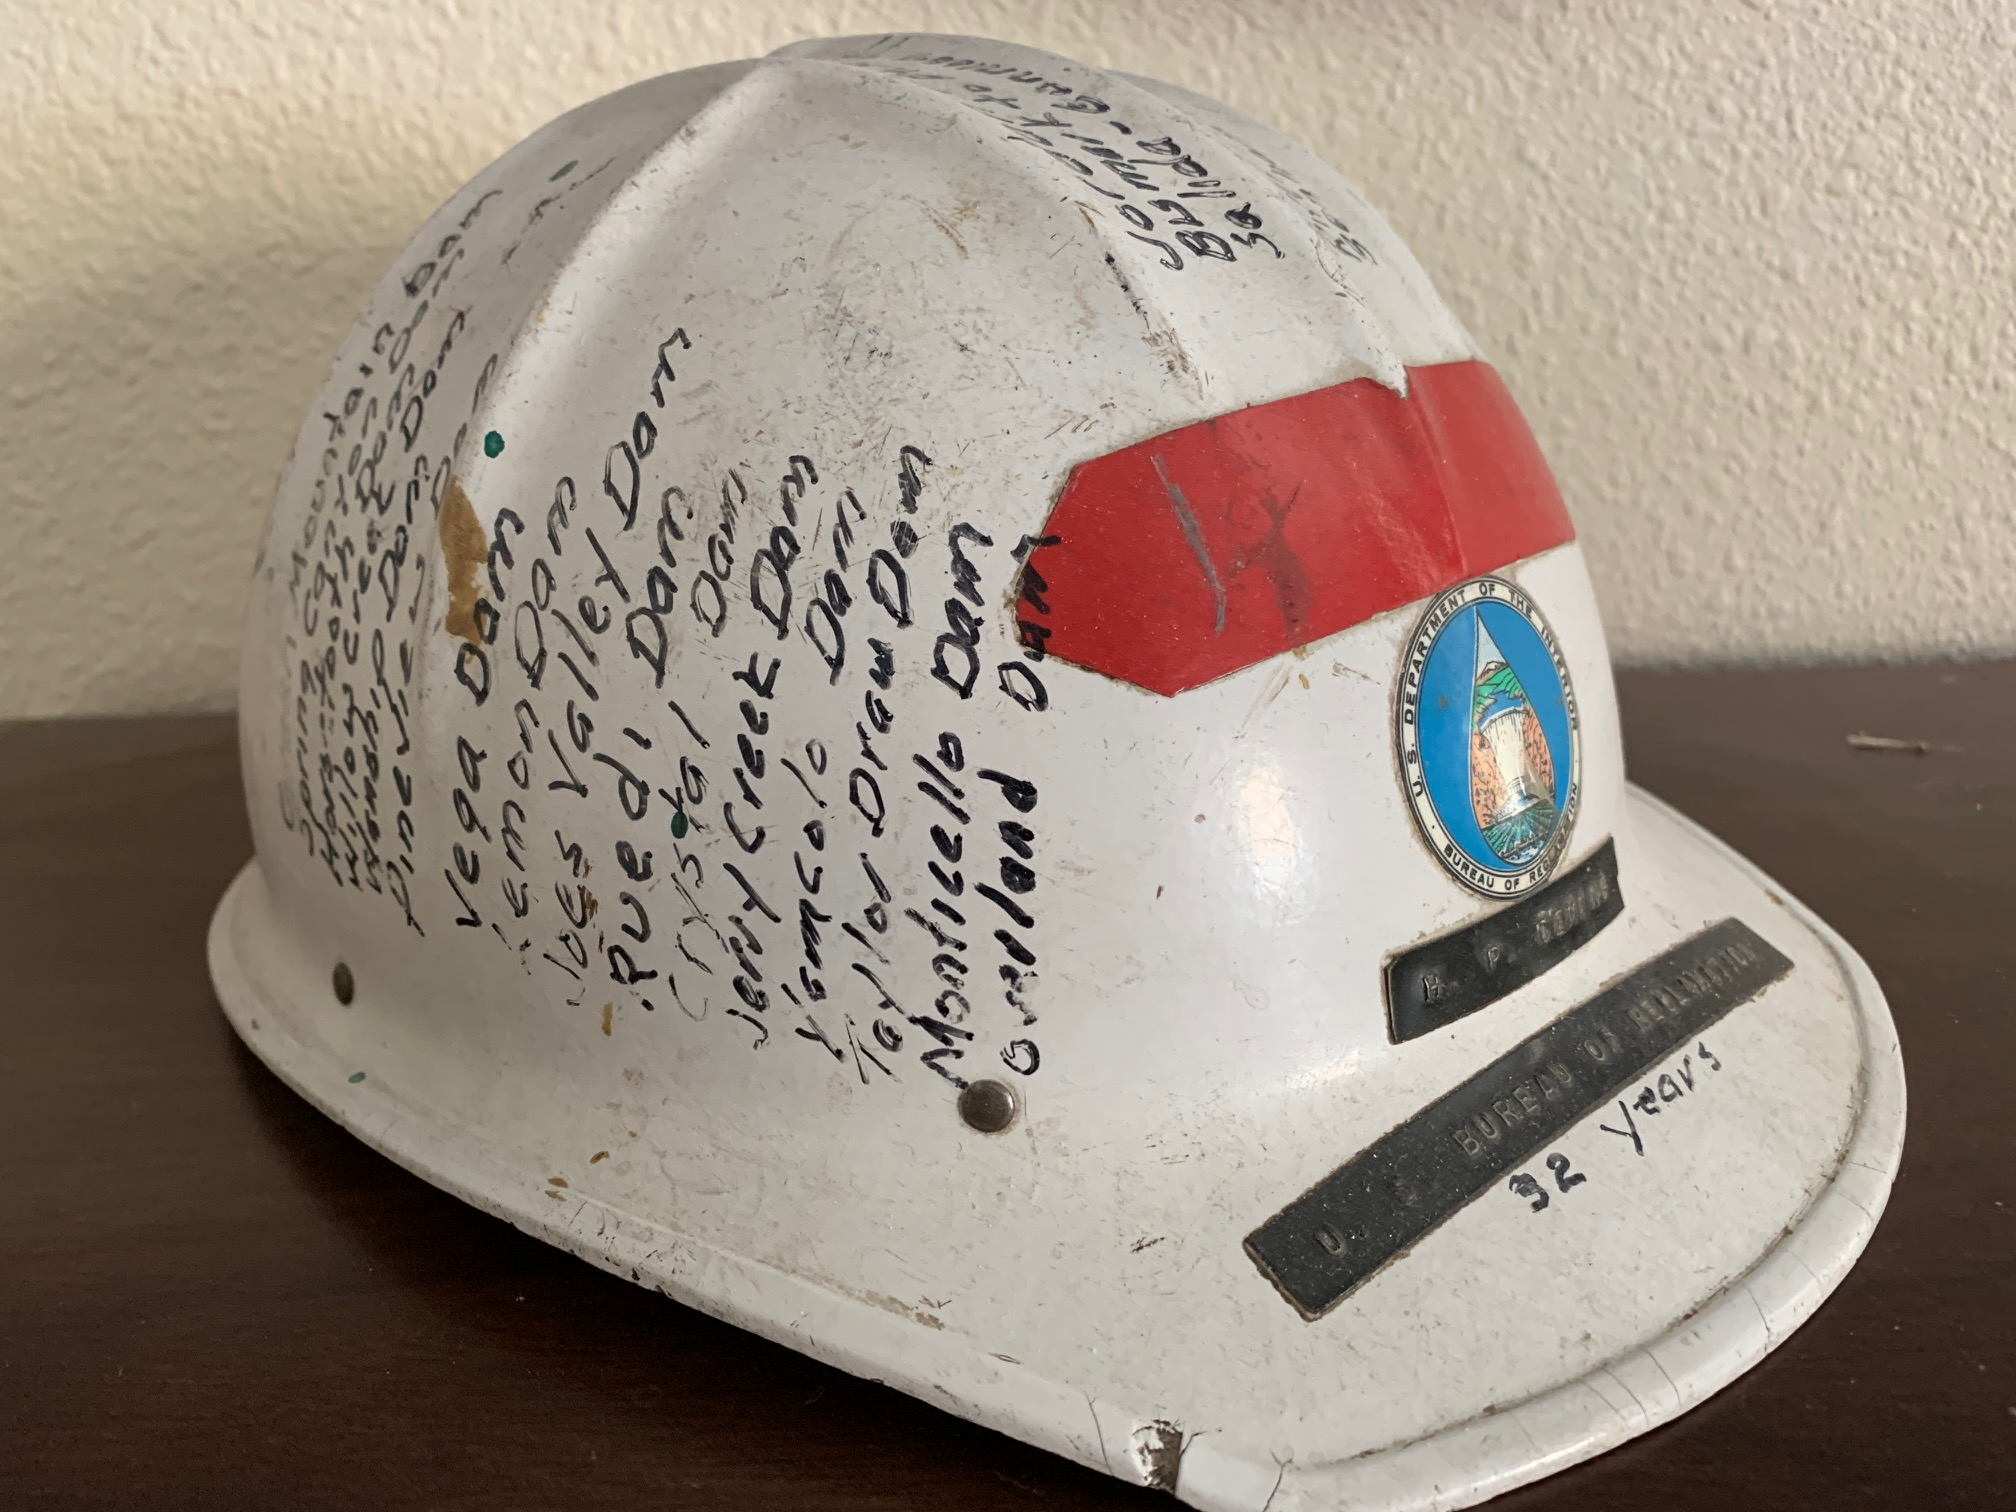 Chick's hardhat, it was a retirement gift that lists all the dams and other facilities he worked on in his career. Bart proudly displays it in his office.